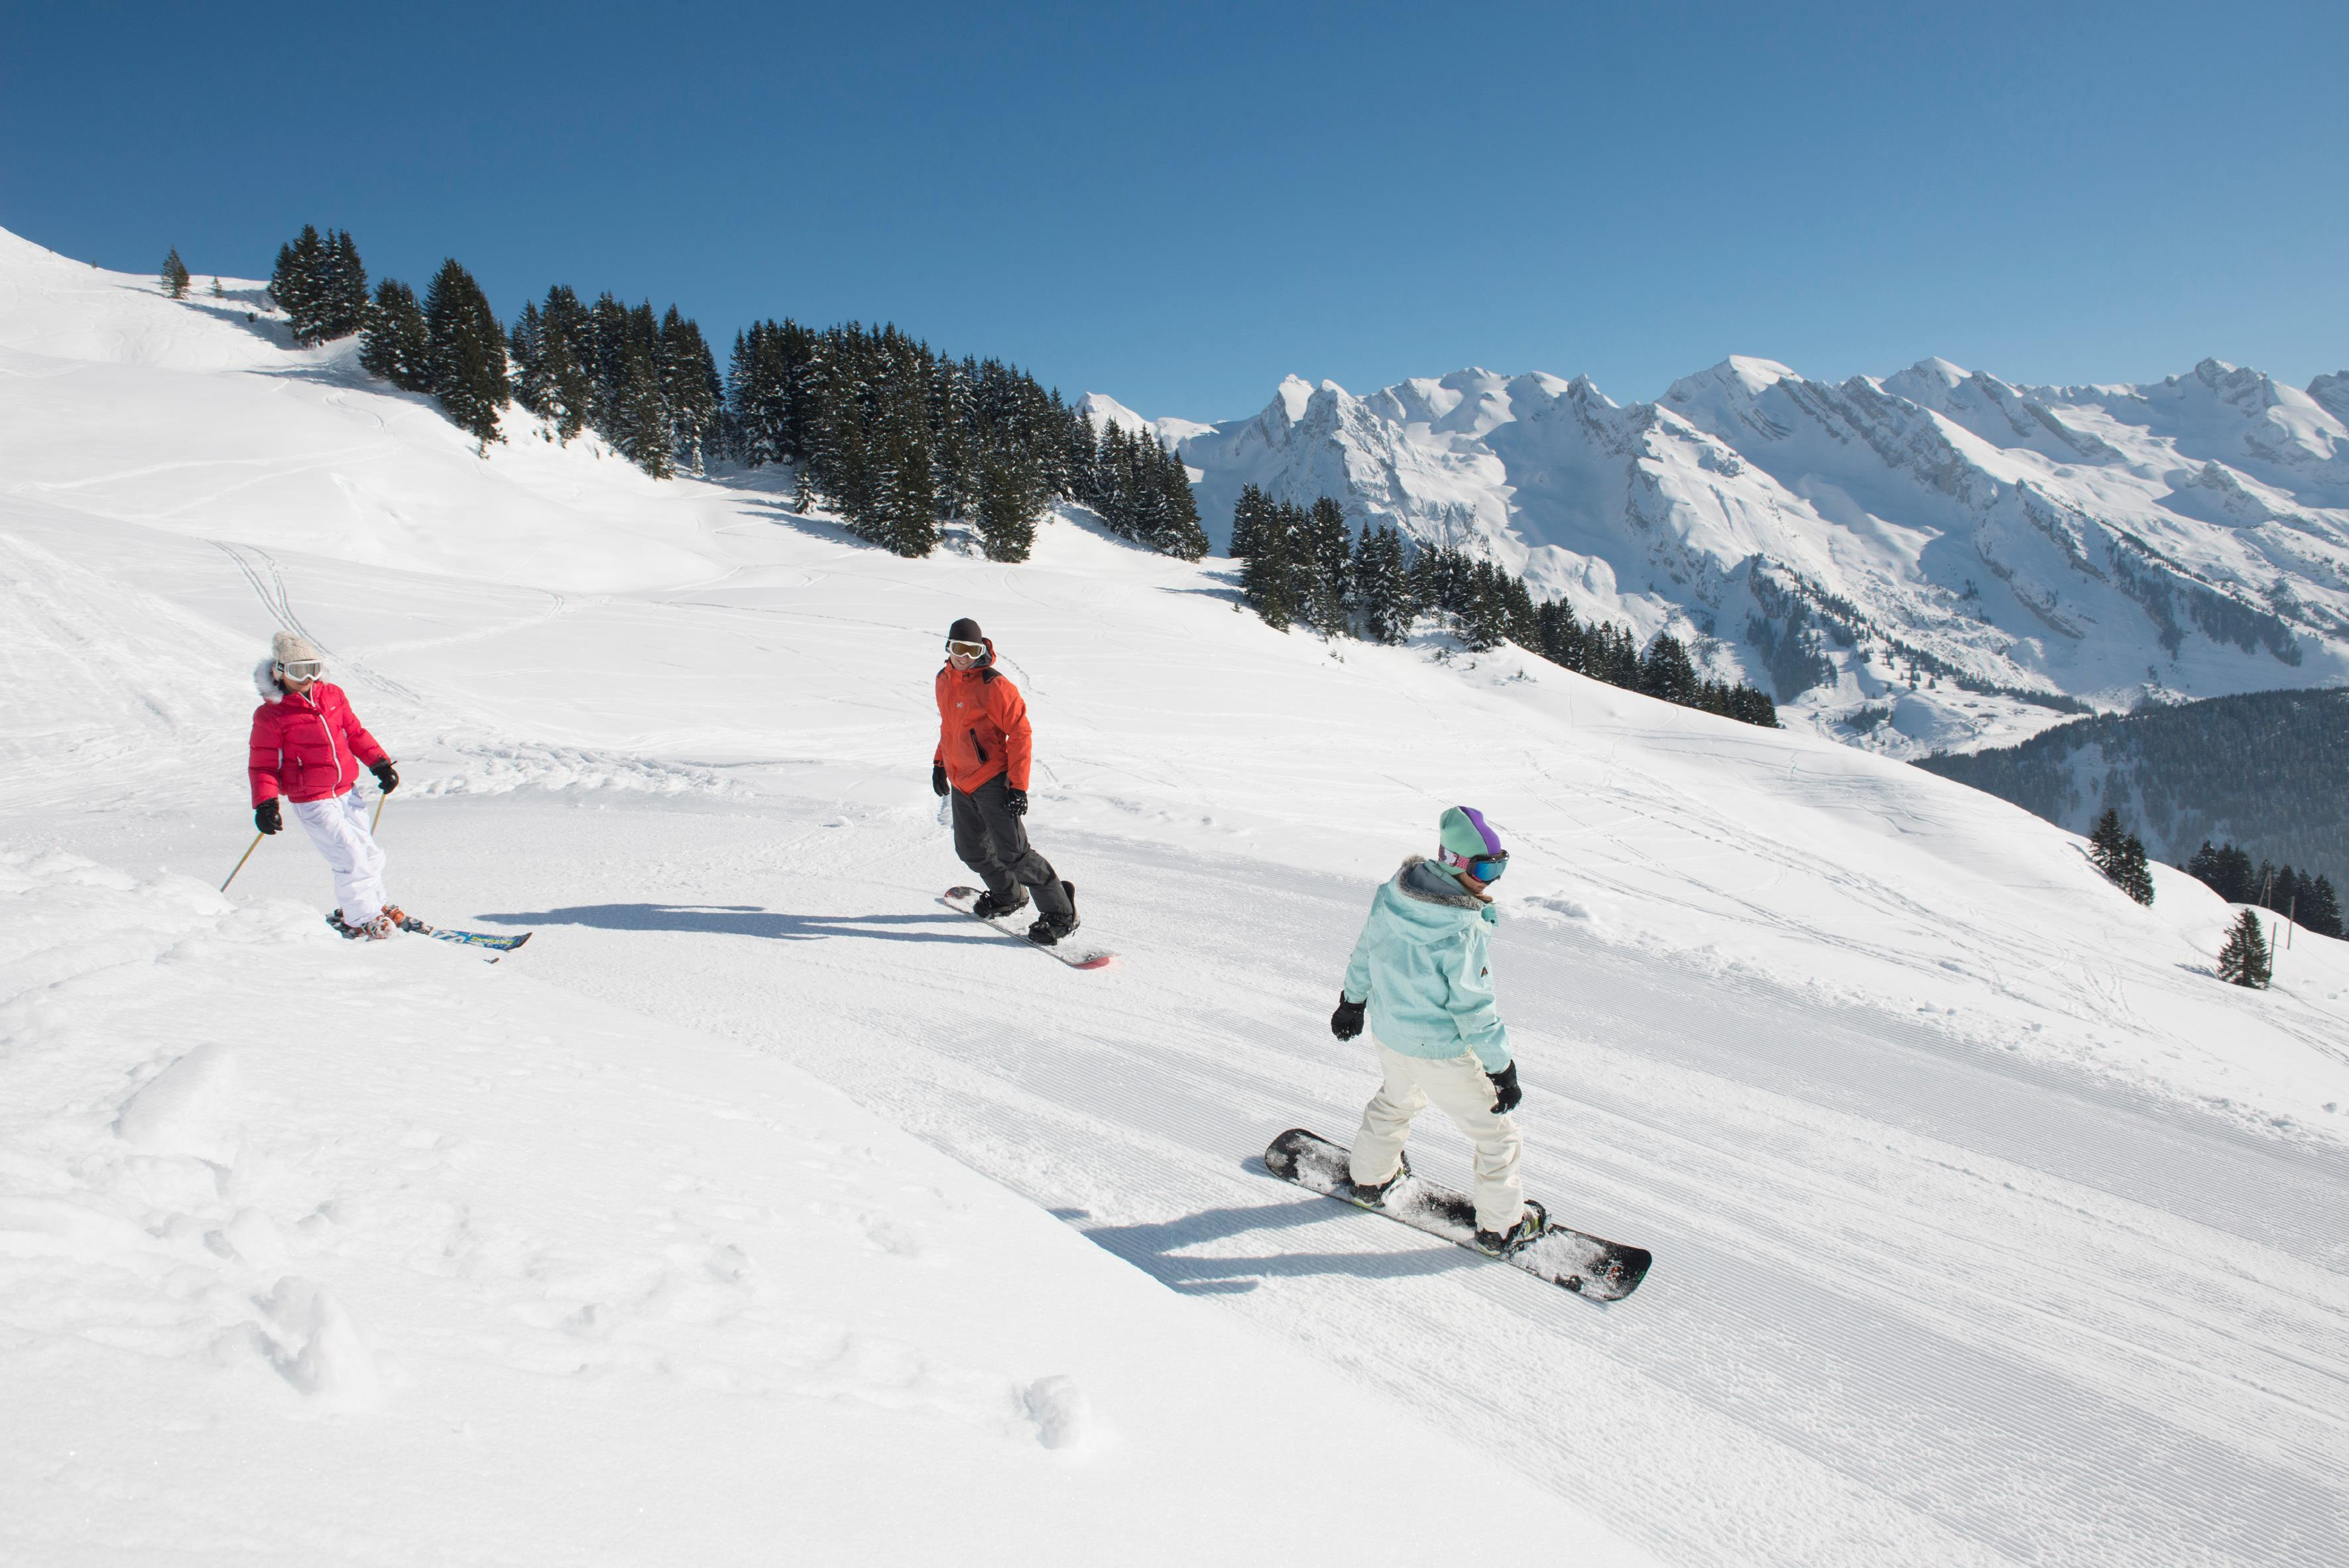 Skiing in Le Grand Bornand